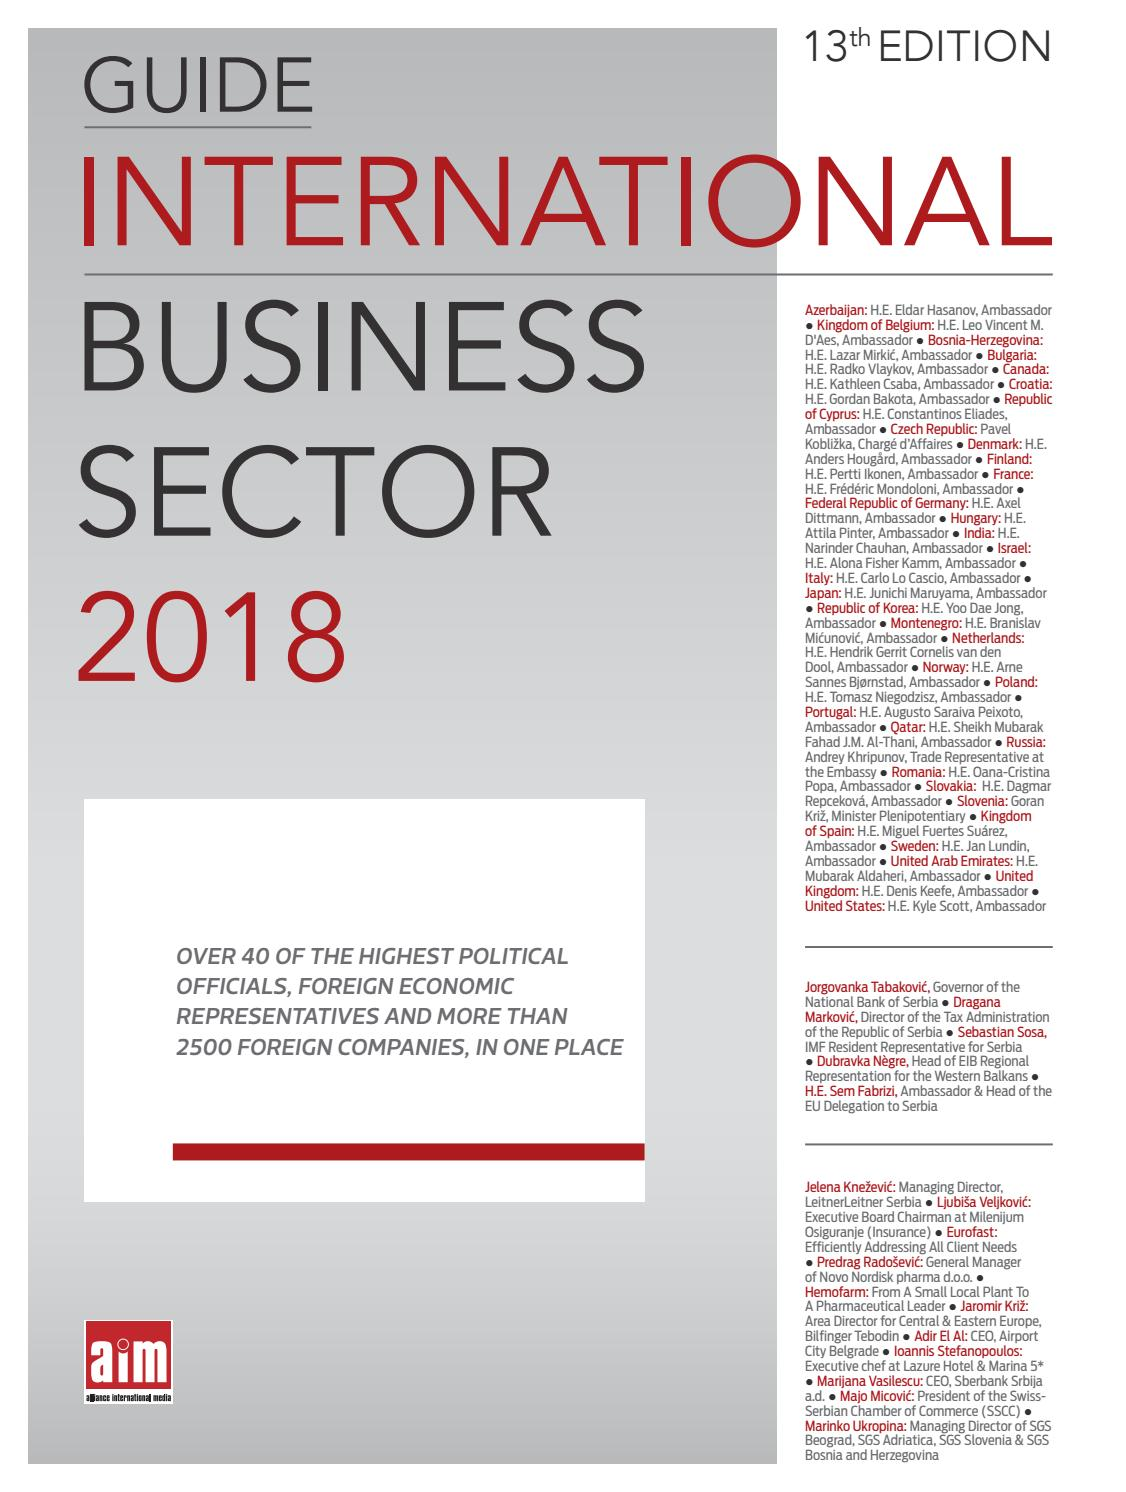 International Business Sector 2018 By Cord Magazine Issuu